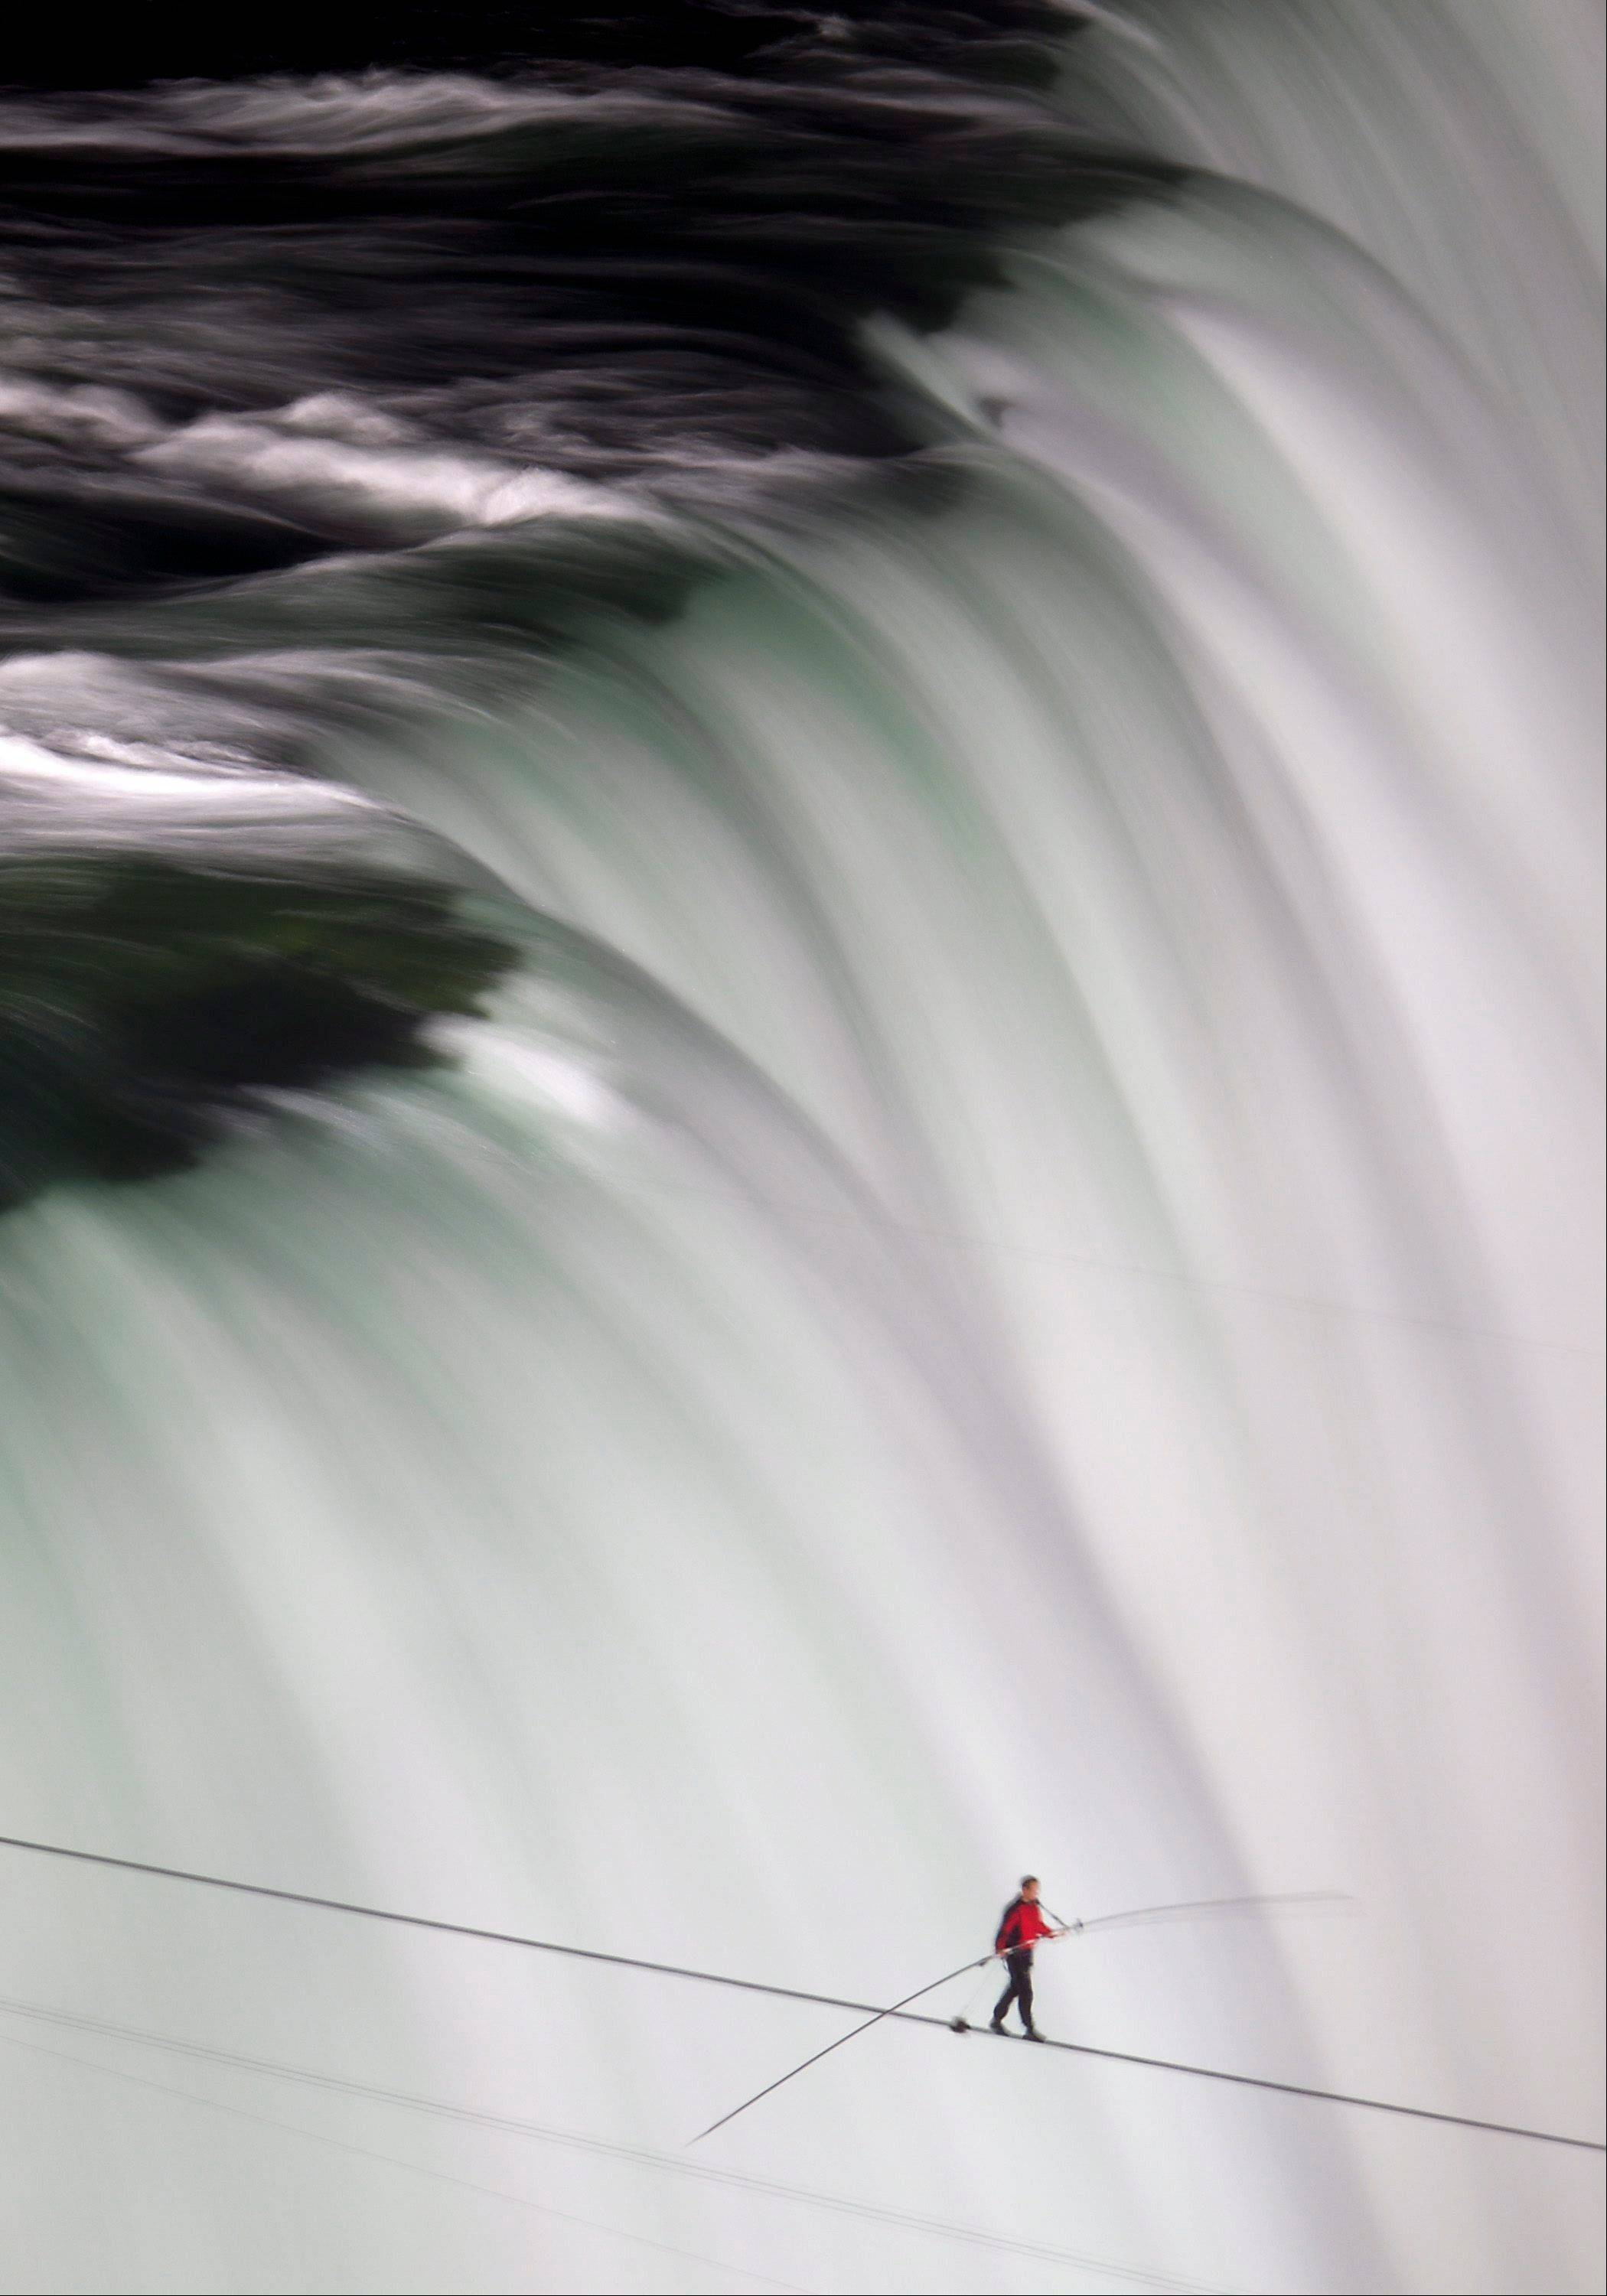 Nik Wallenda walks over Niagara Falls on a tightrope in Niagara Falls, Ontario, on Friday, June 15, 2012. Wallenda has finished his attempt to become the first person to walk on a tightrope 1,800 feet across the mist-fogged brink of roaring Niagara Falls. The seventh-generation member of the famed Flying Wallendas had long dreamed of pulling off the stunt, never before attempted.